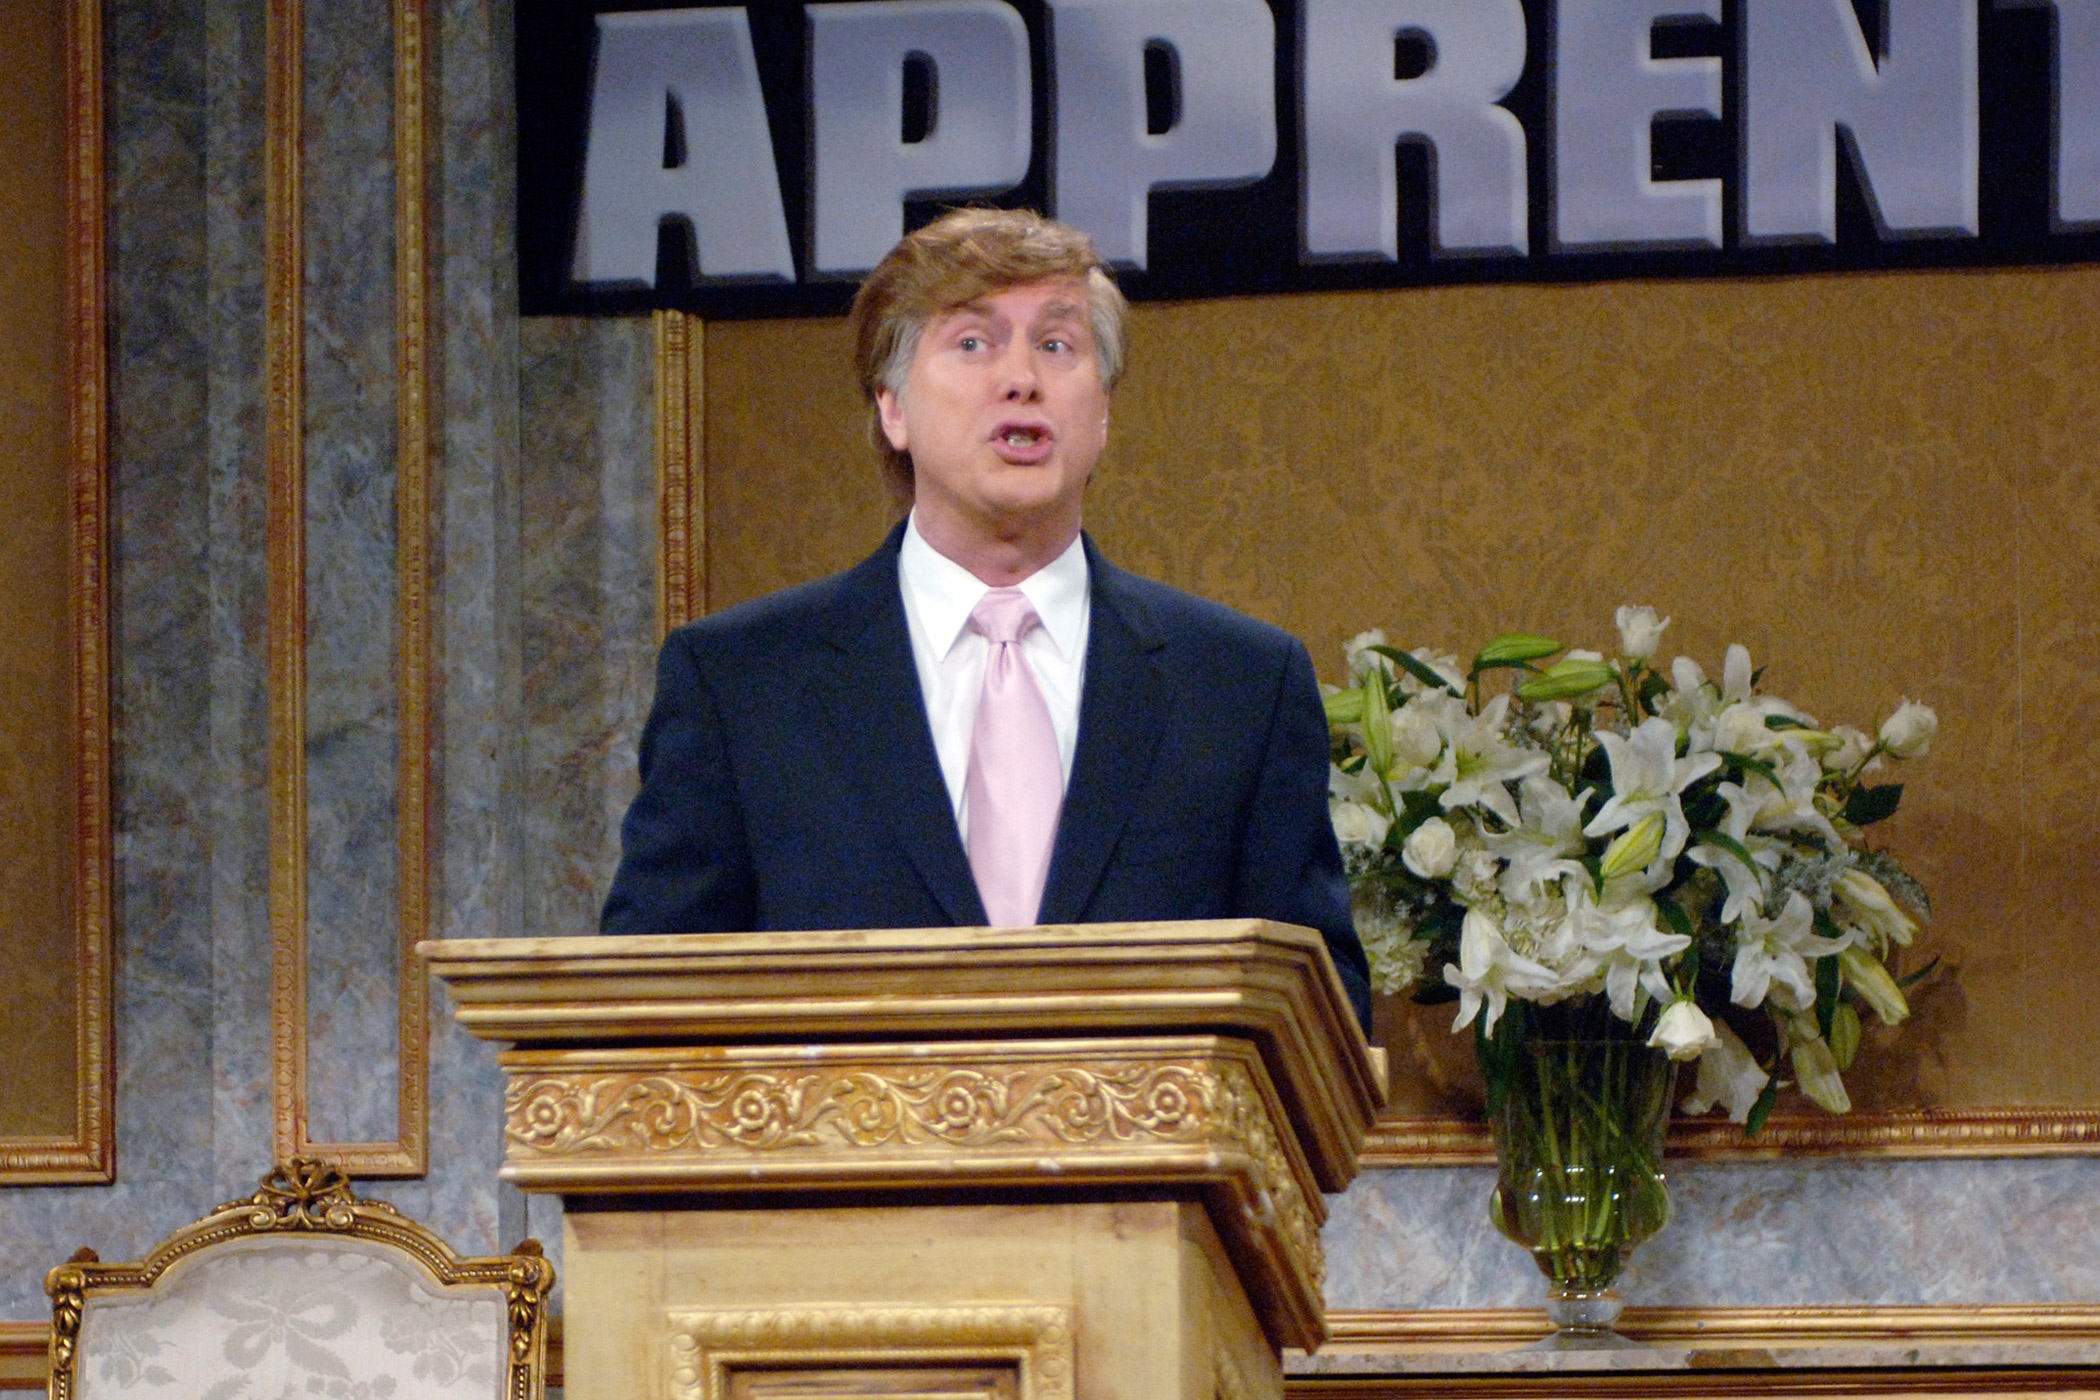 Comedian Darrell Hammond appeared as Donald Trump during the skit 'Trump's Press Conference' on Jan. 13, 2007.